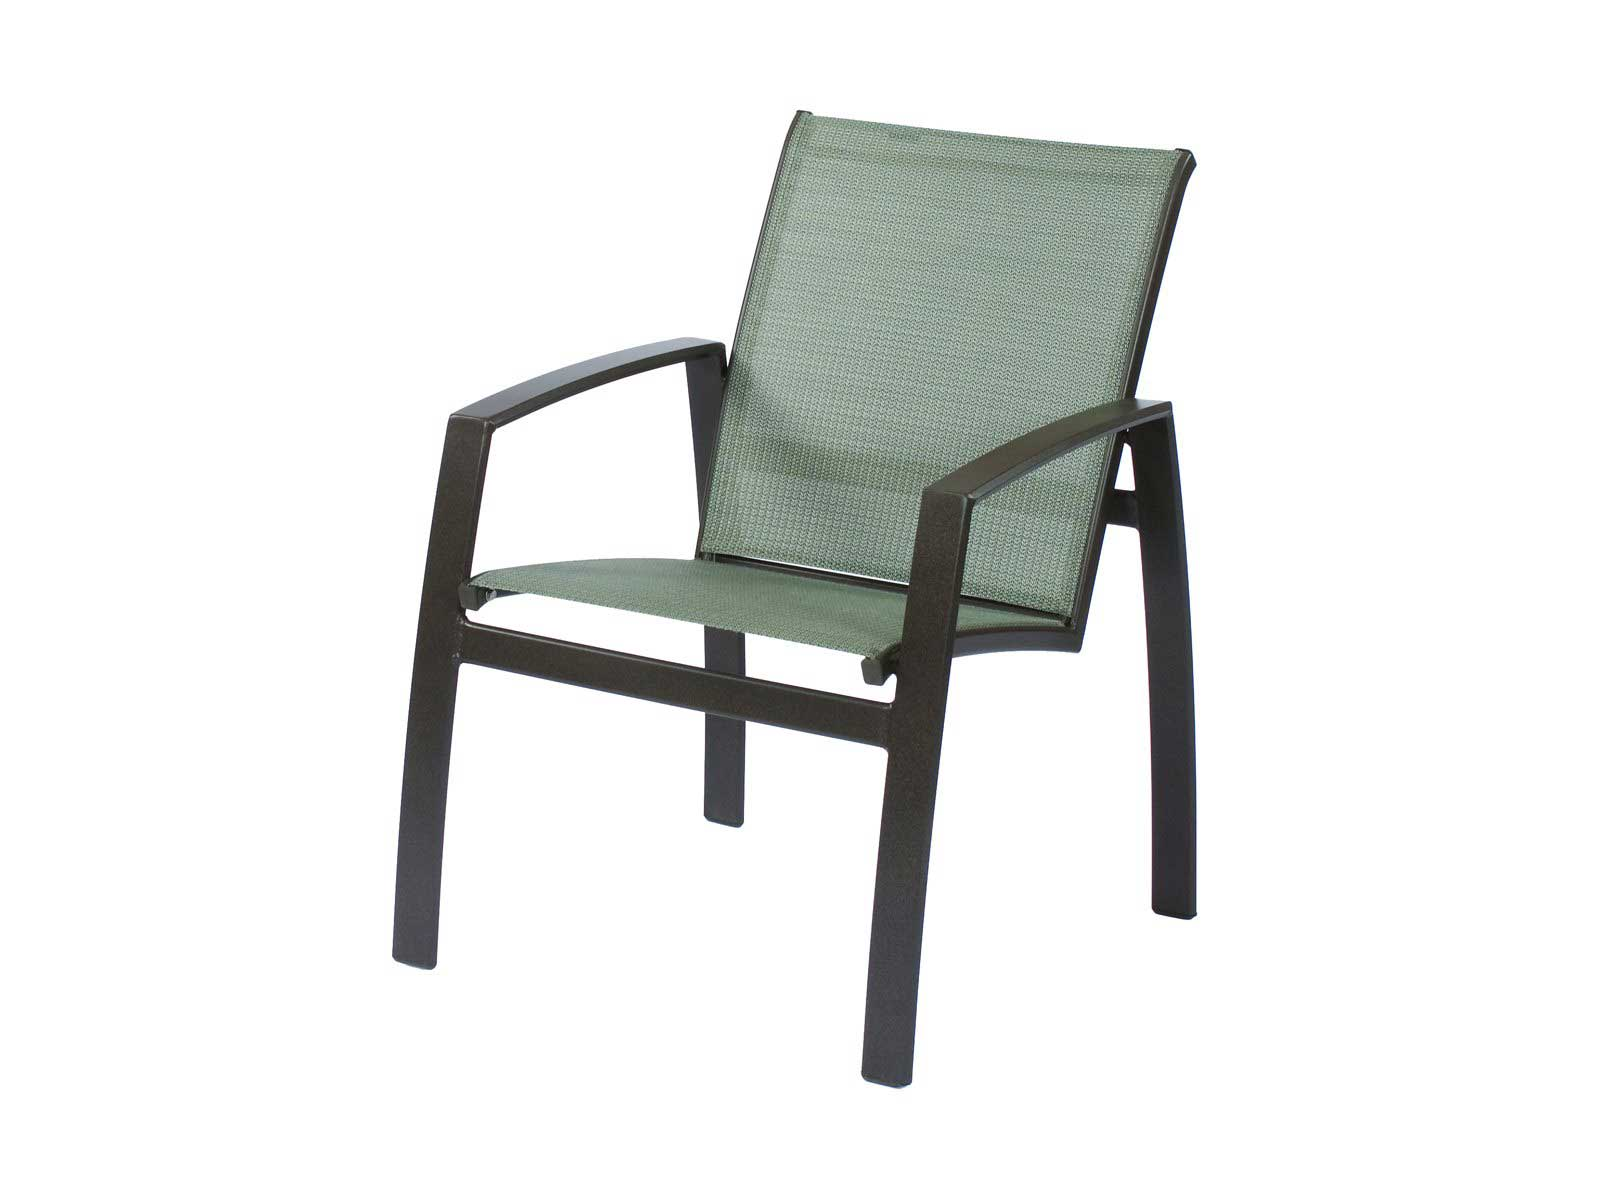 Suncoast Vision Cast Aluminum Seat in Sling Design